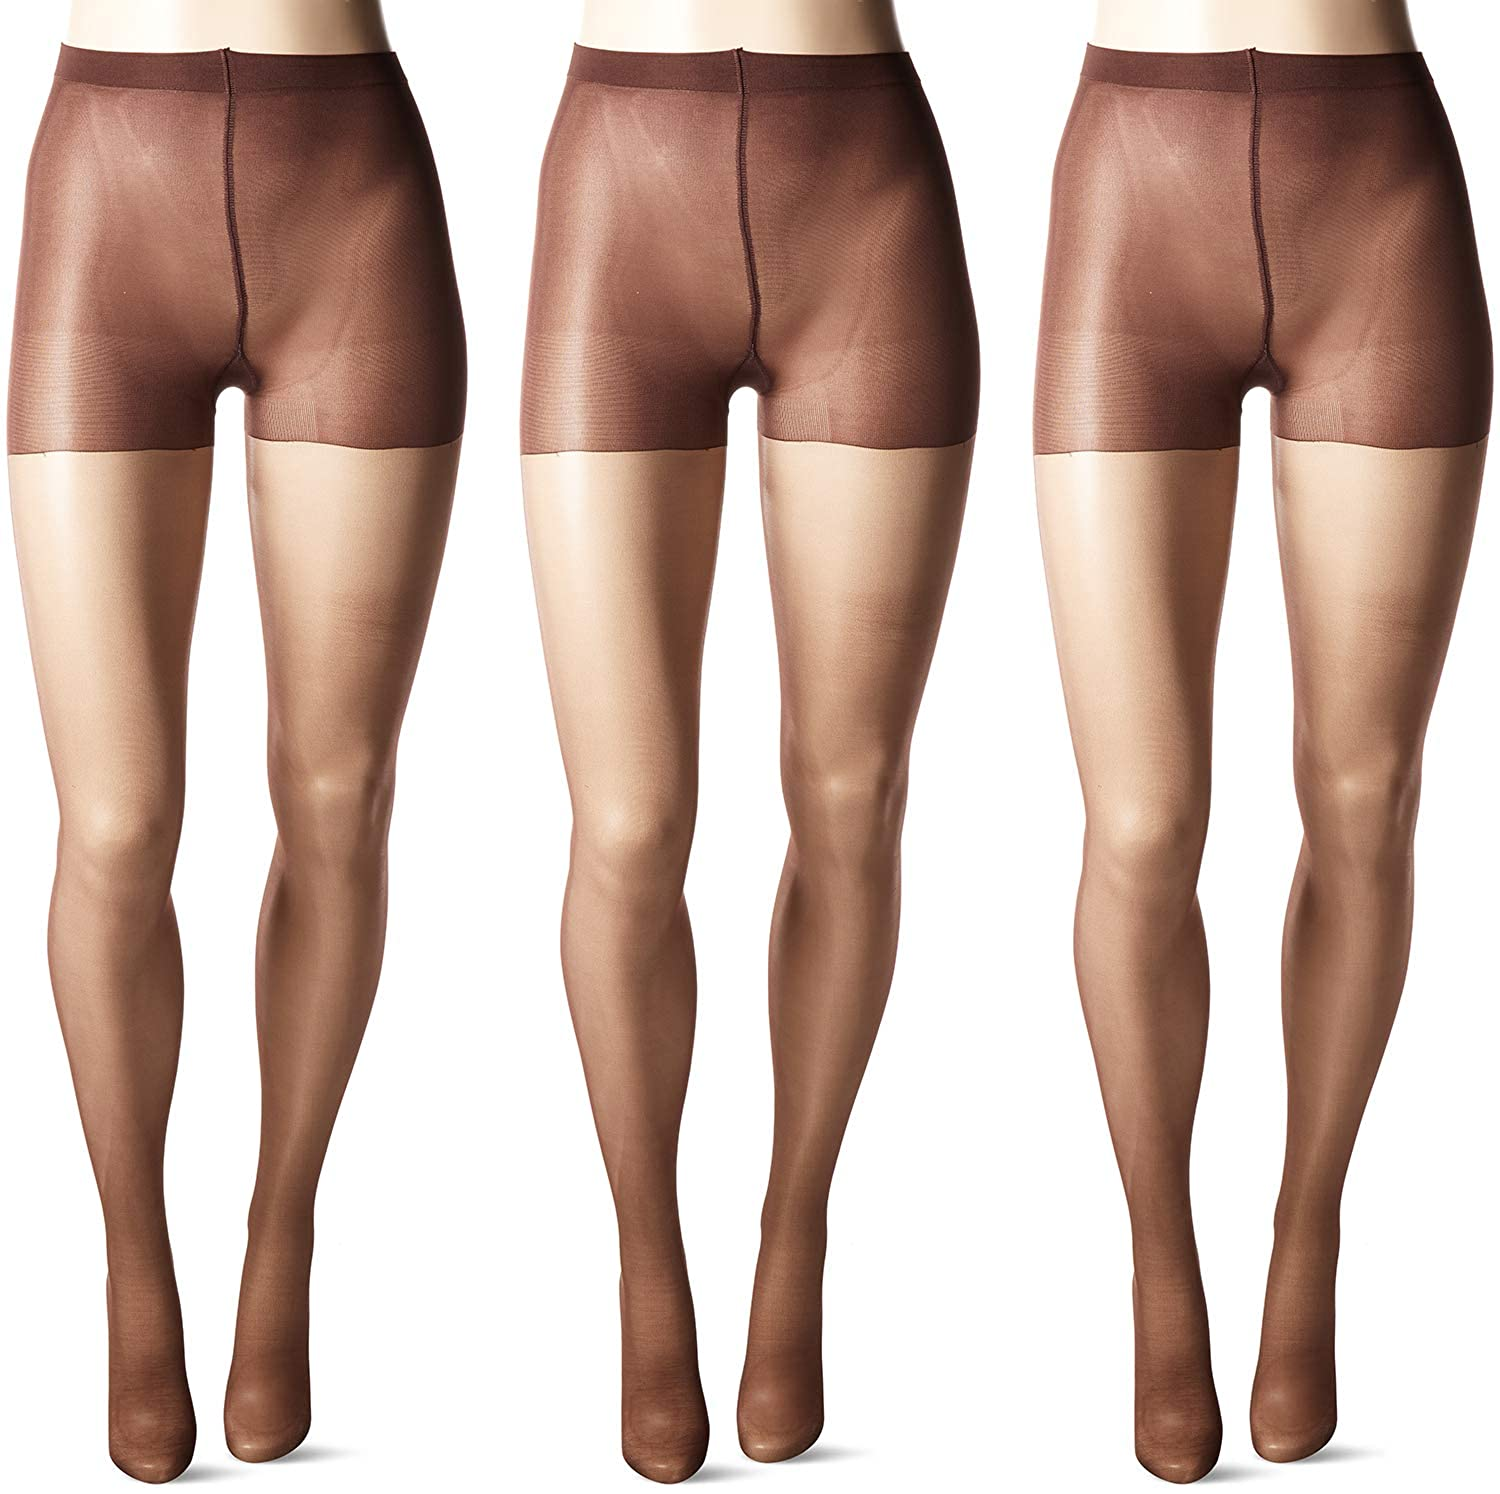 75cba9300 HUE Women s So Silky Sheer Control Top Pantyhose (Pack of 3) at Amazon  Women s Clothing store